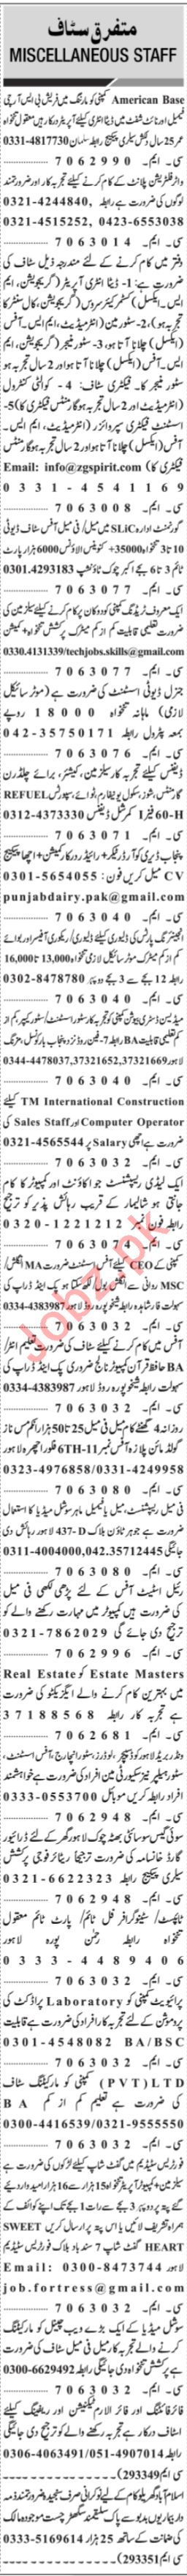 Jang Sunday Classified Ads 24th March 2019 for Miscellaneous